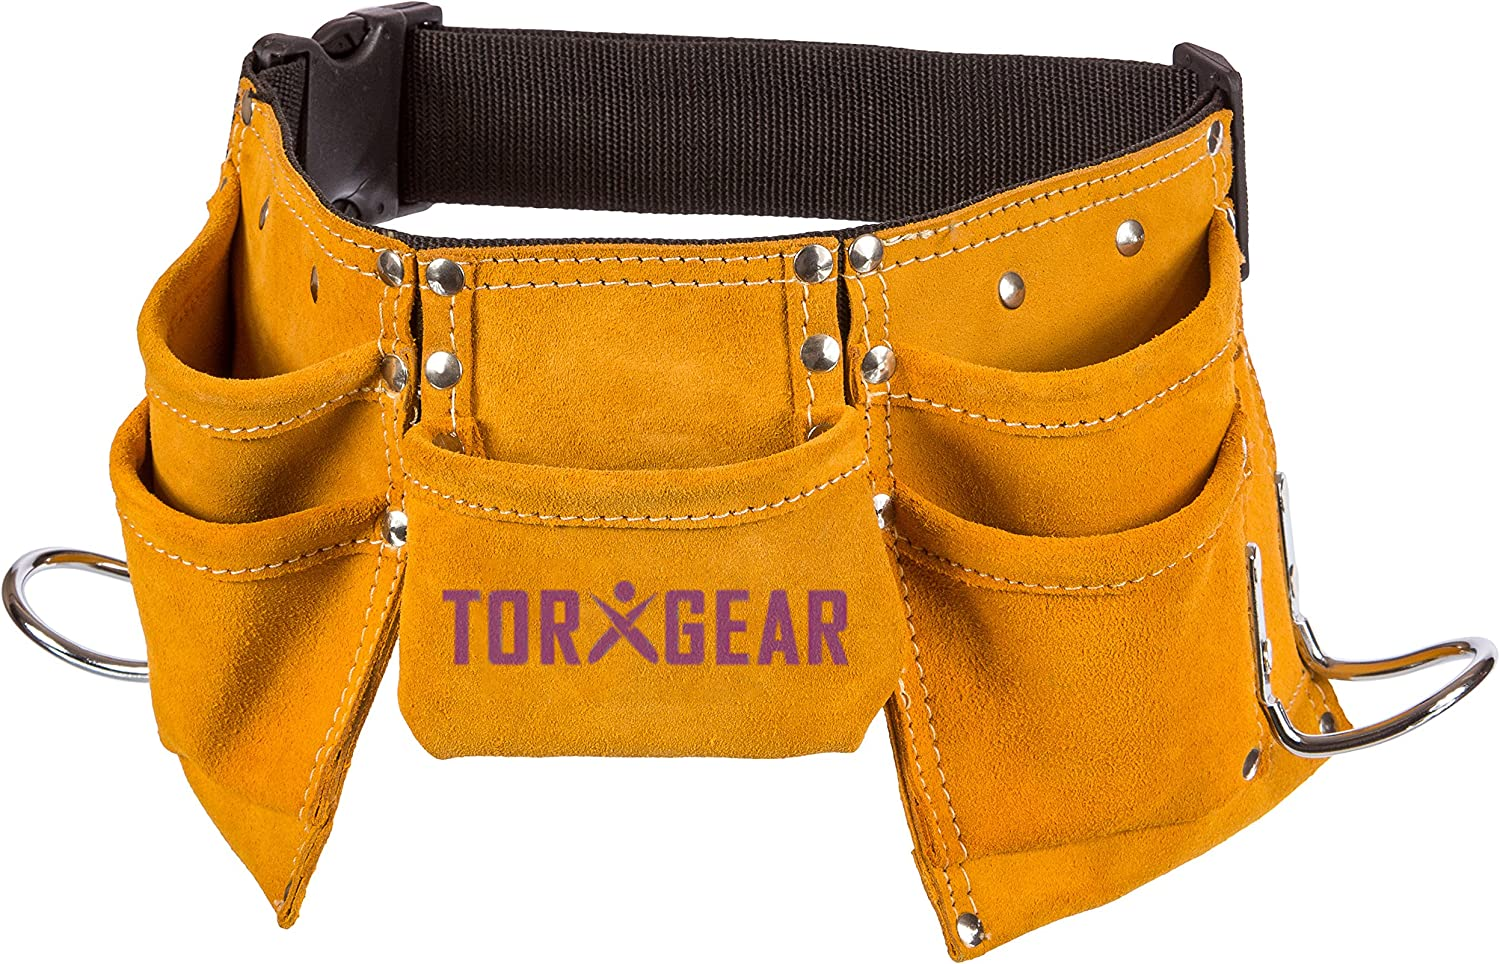 security Soldering Childs Leather Tool Belt - Suede for Working Pouch